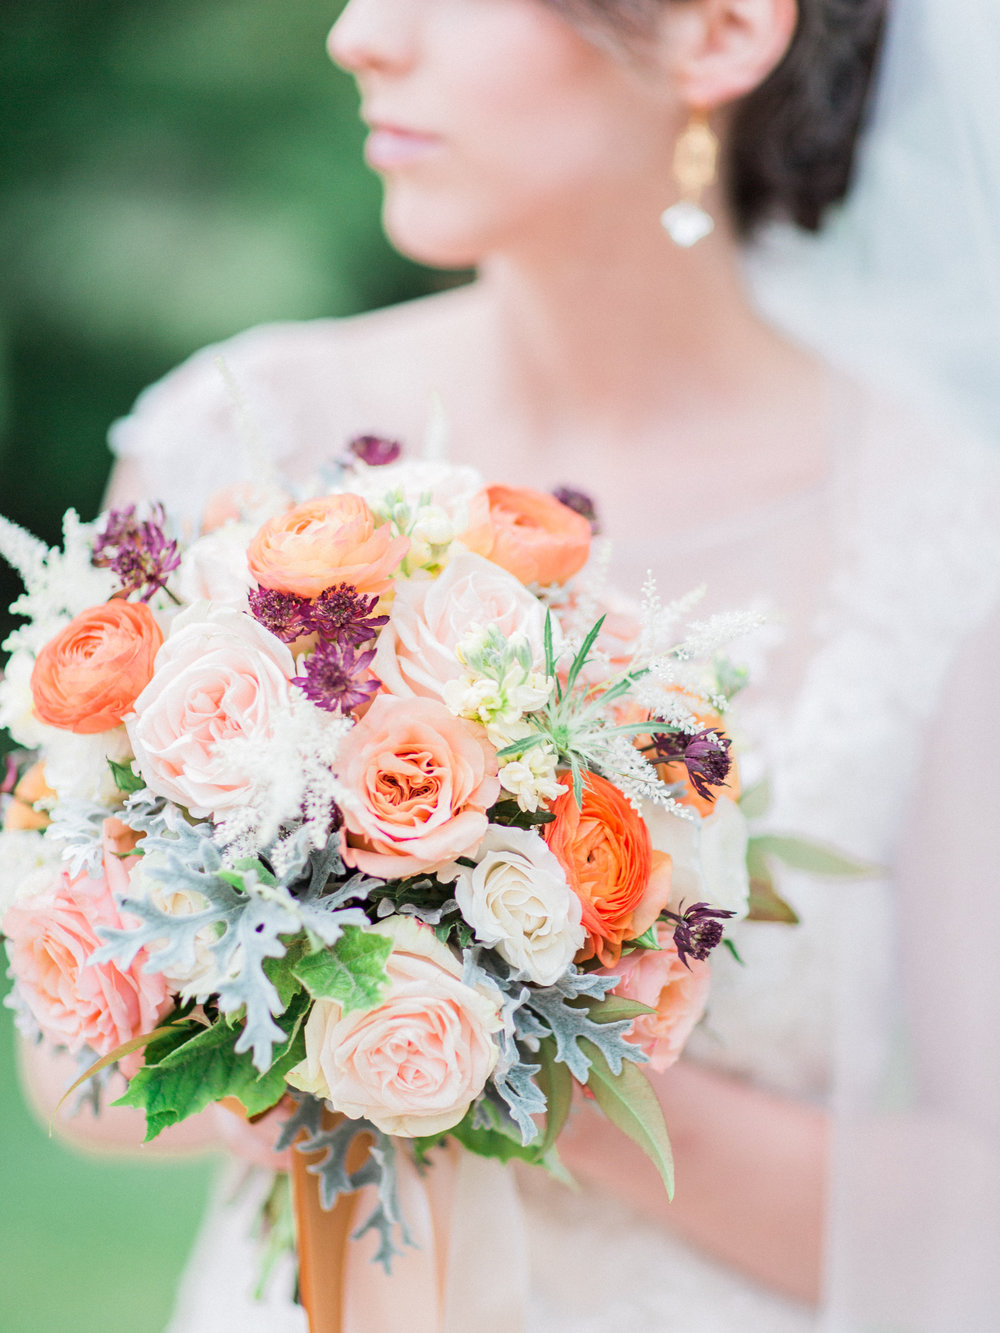 Bridal bouquet of peach Shimmer roses, orange ranunculus, purple astrantia by Lark Floral